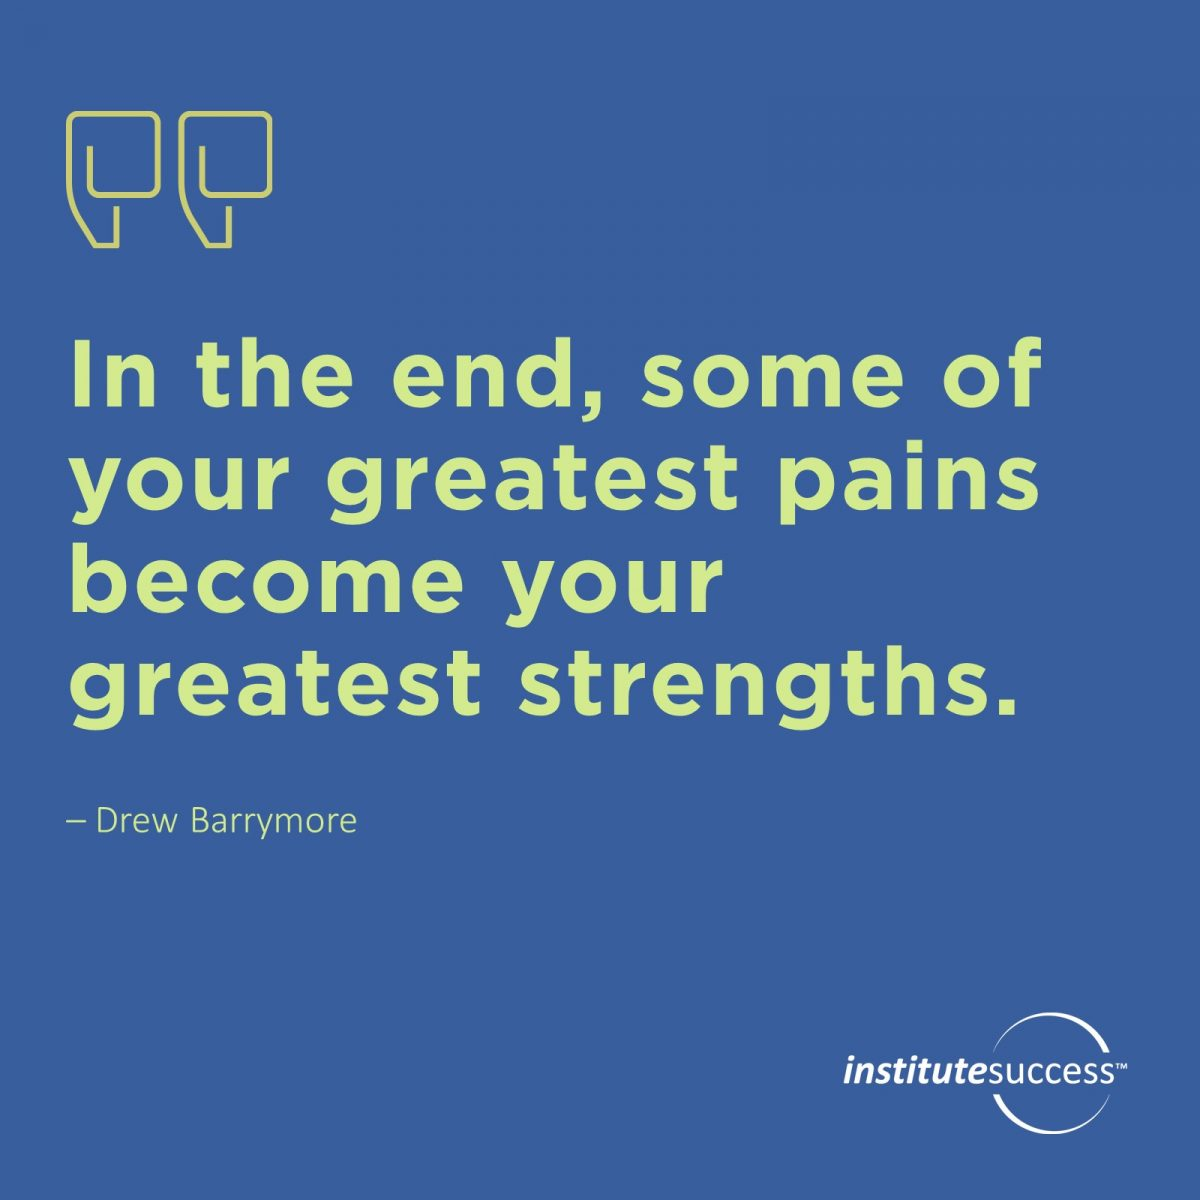 In the end, some of your greatest pains become your greatest strengths.Drew Barrymore